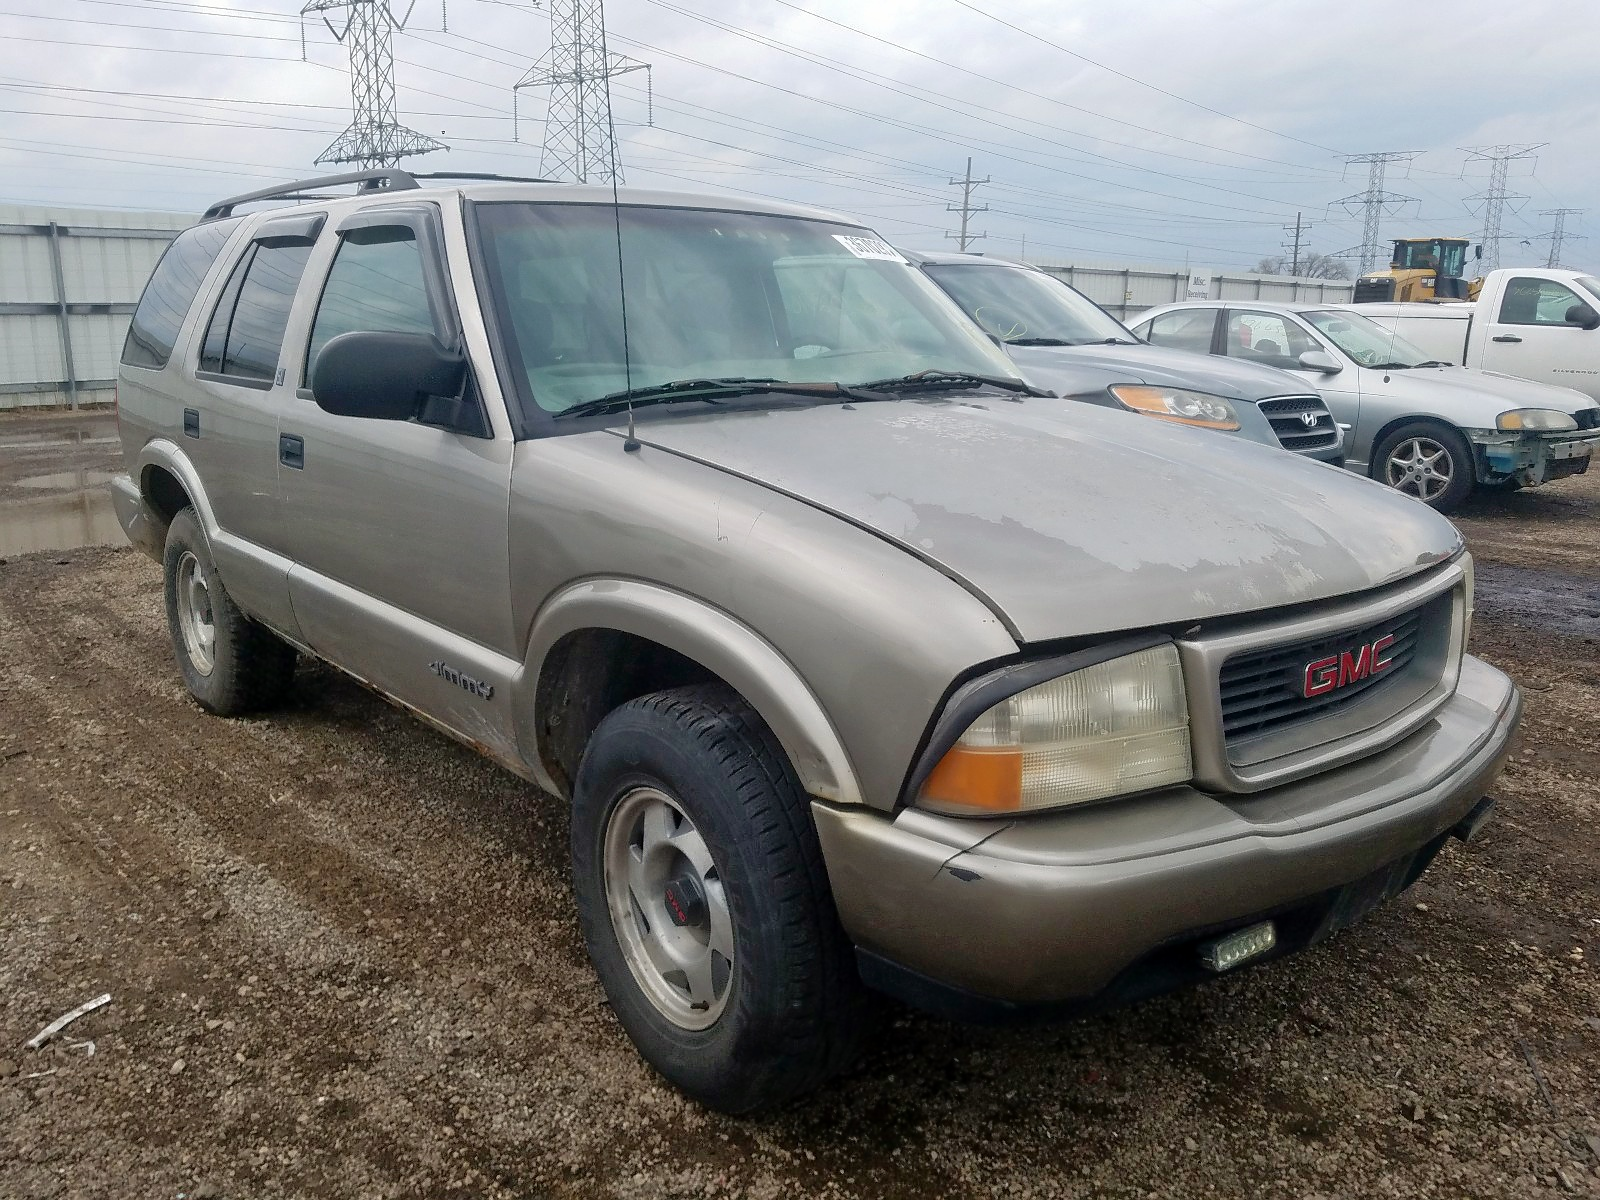 1999 gmc jimmy for sale at copart elgin il lot 36702970 salvagereseller com salvagereseller com